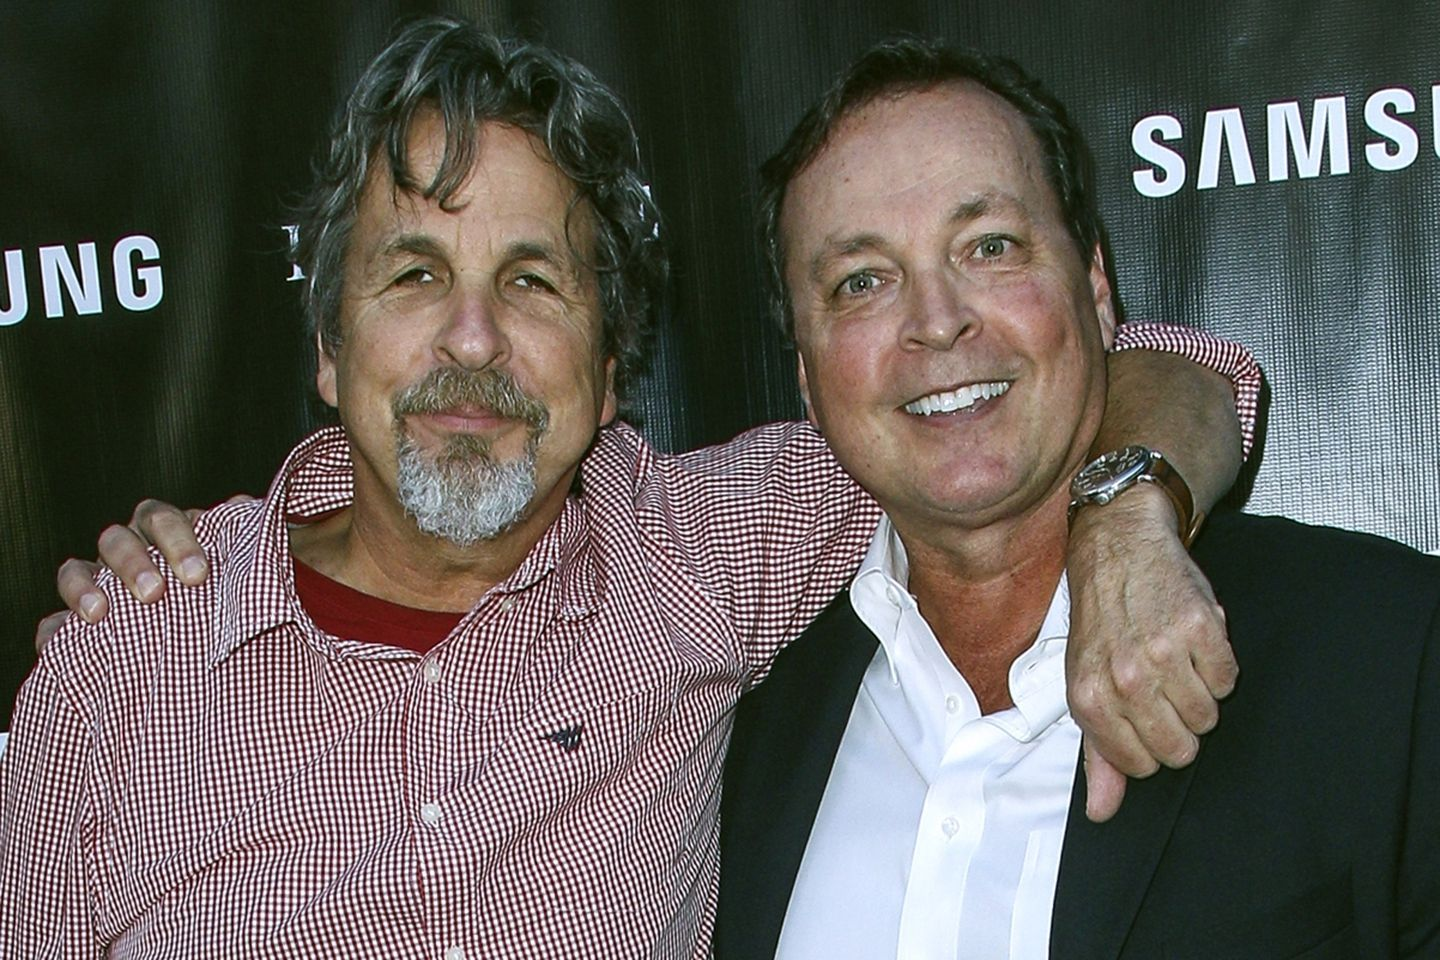 Farrelly Brothers Being Honored For Casting People With